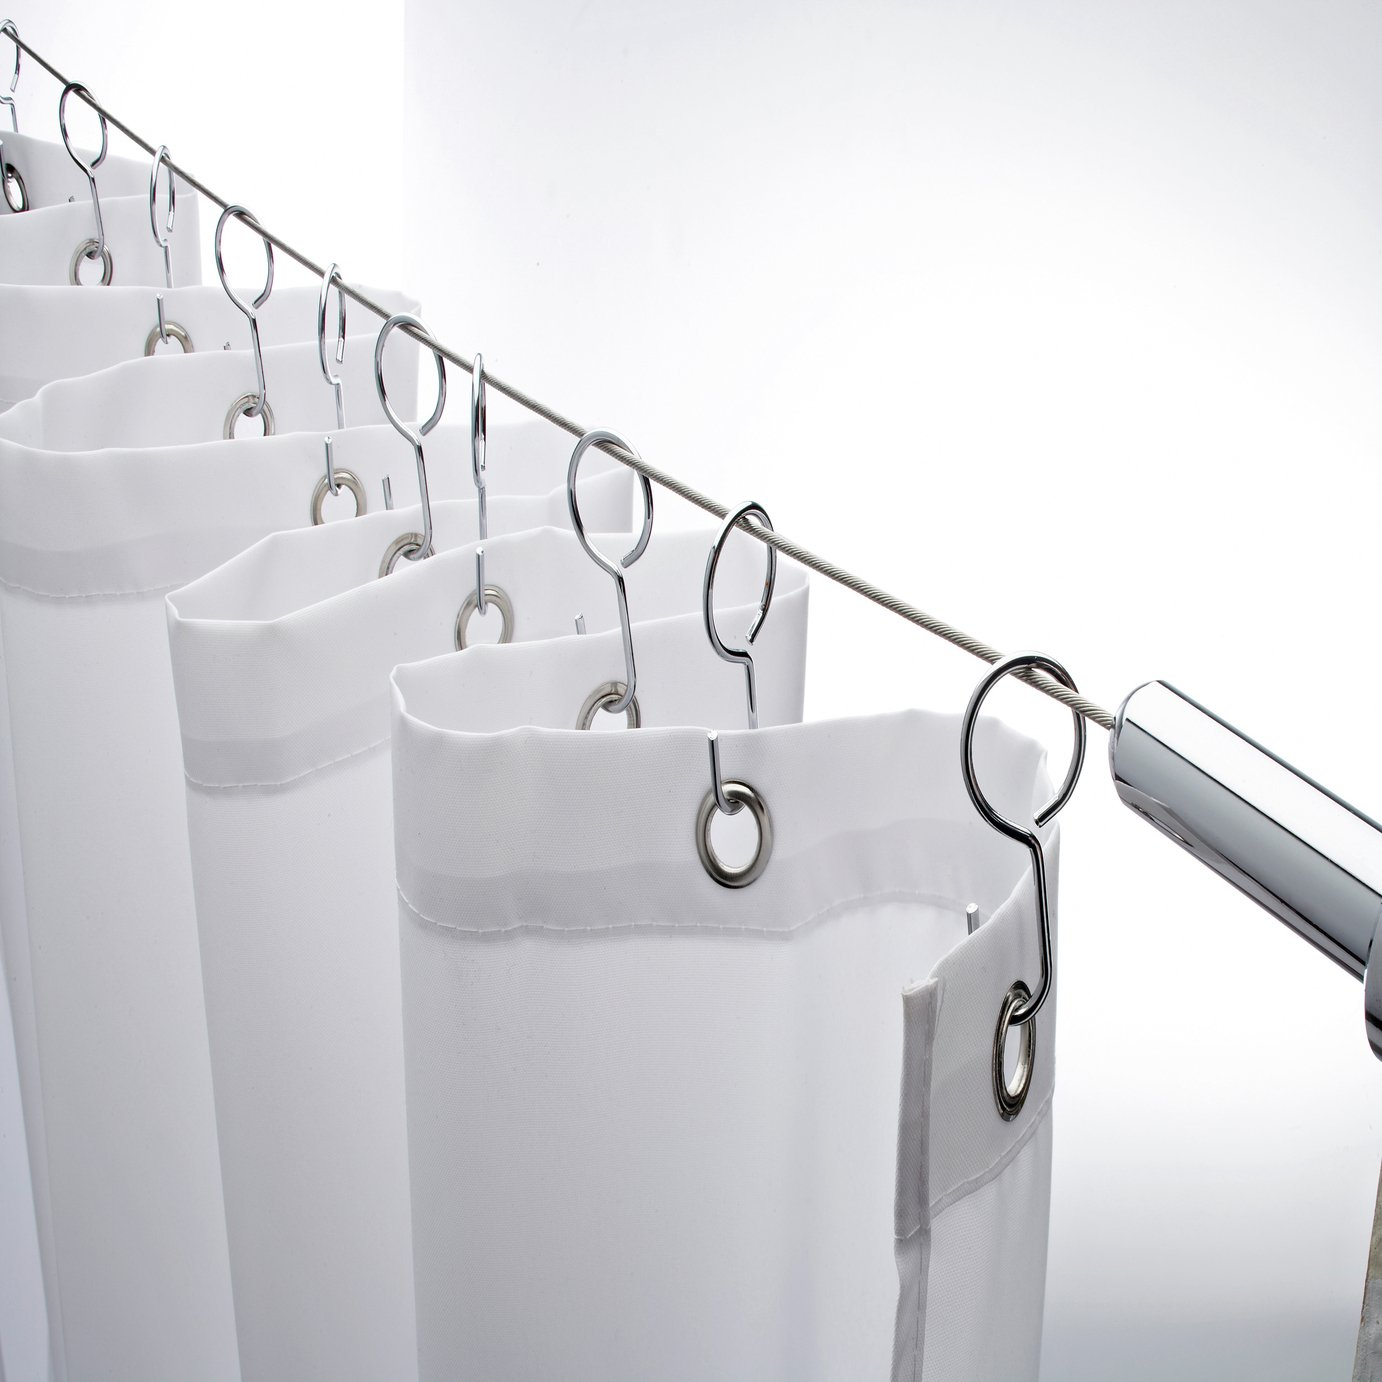 Tier basket shower caddy mild steel rust free stick n lock bathroom - Croydex Stainless Steel Shower Curtain Tension Cable From Croydex